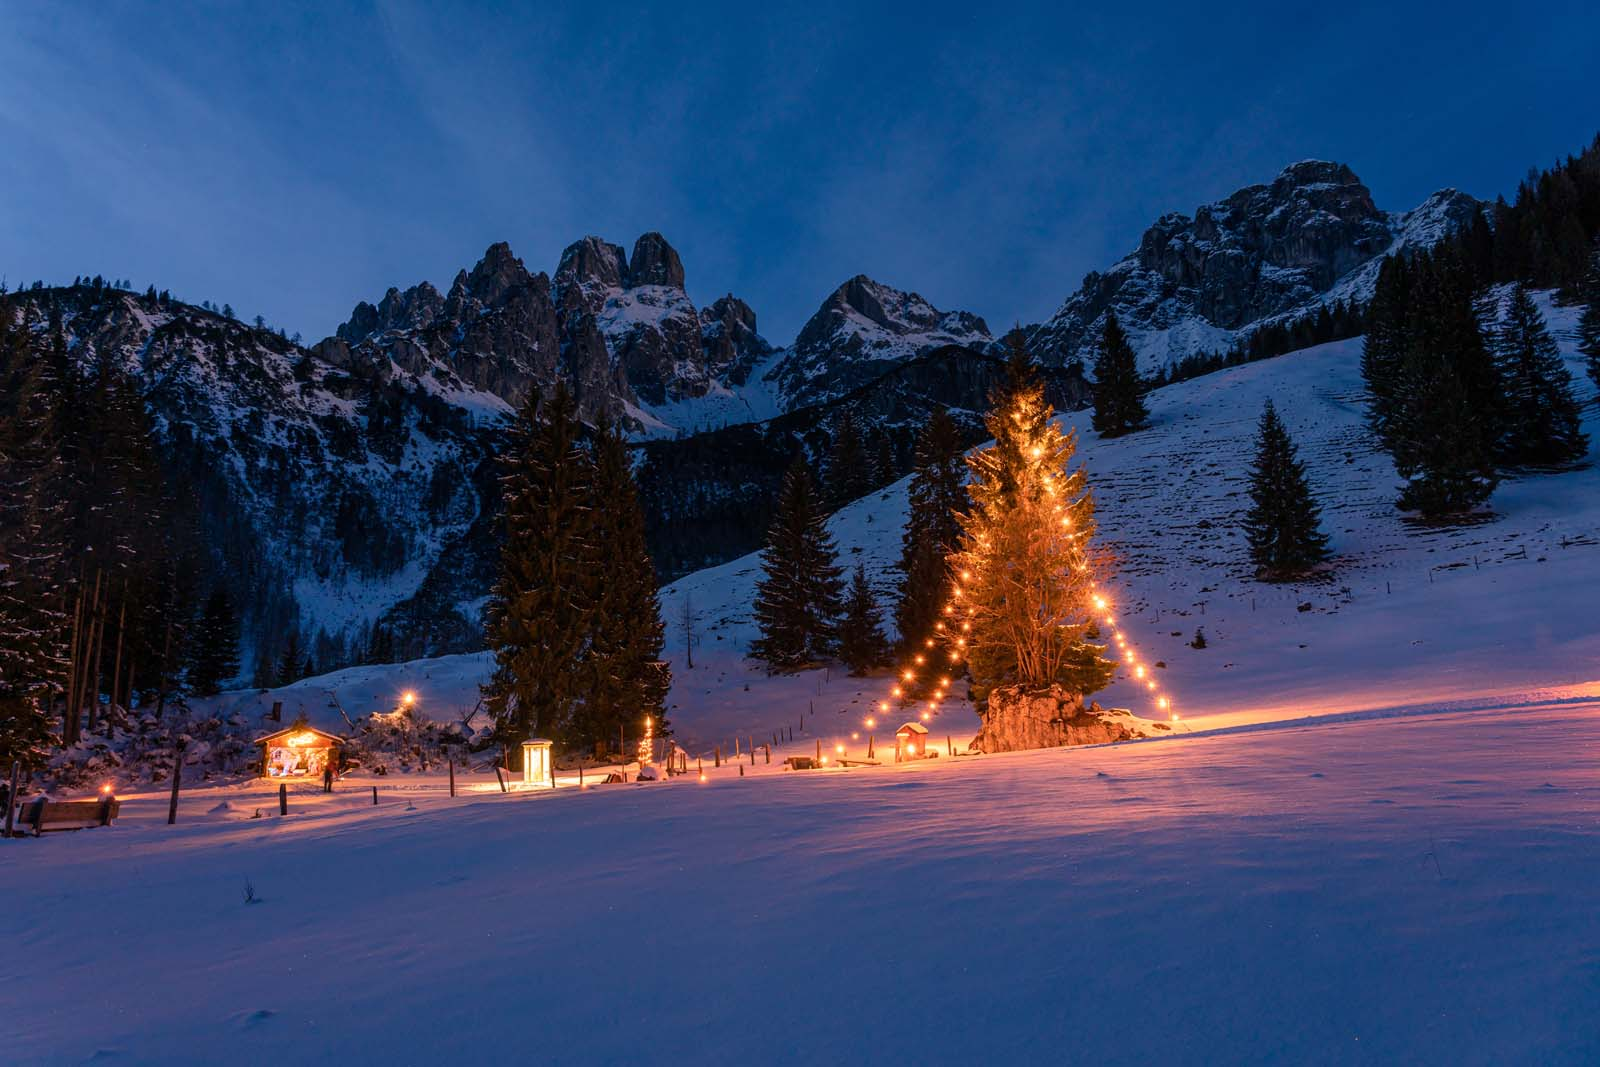 Christmas idyll in Filzmoos. Advent in the mountains, Christmas in the Alps